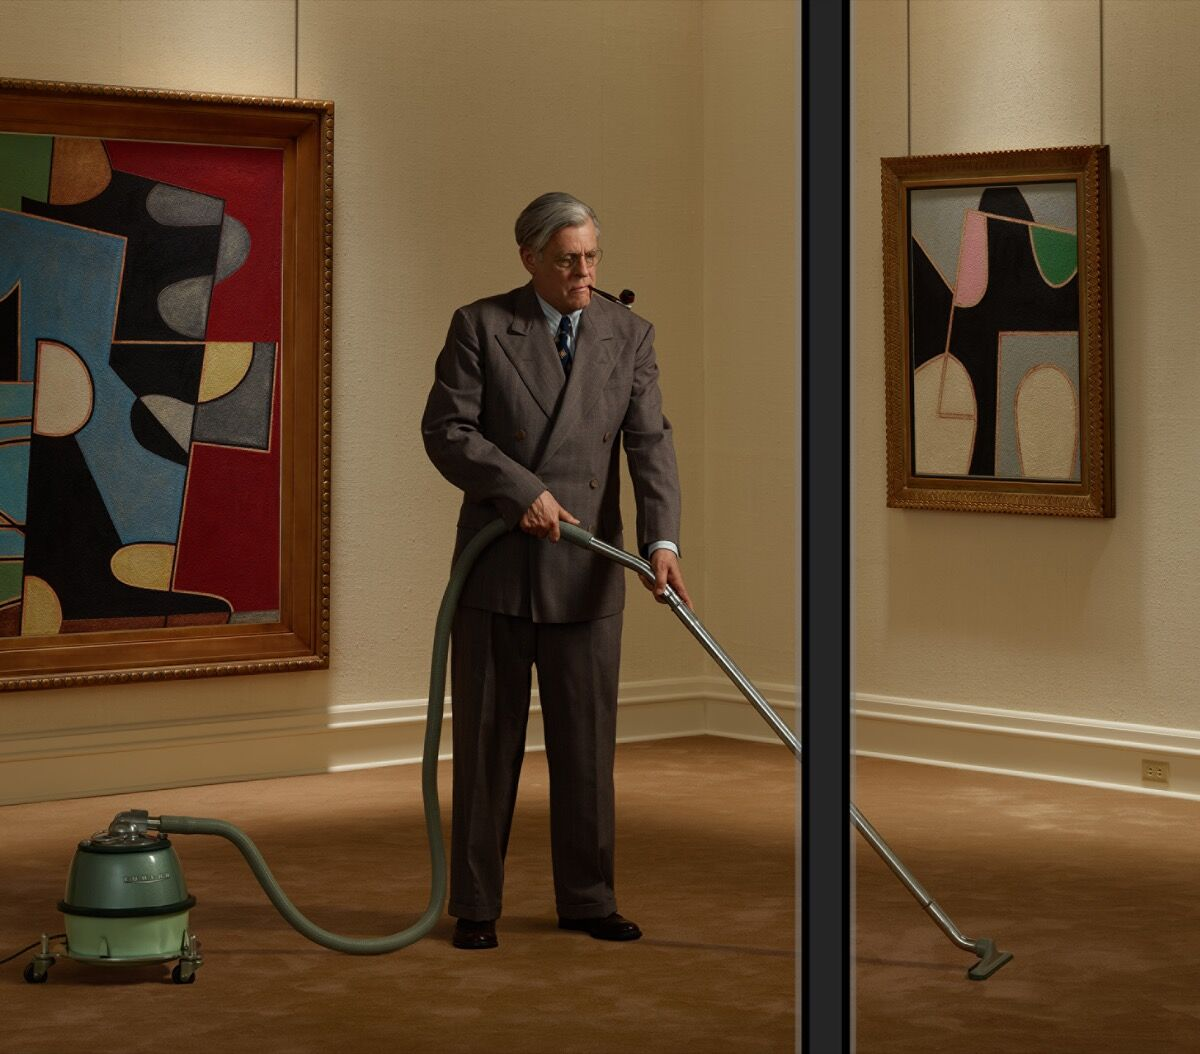 Rodney Graham, detail of Vacuuming the Gallery 1949, 2018. © Rodney Graham. Courtesy of Lisson Gallery.